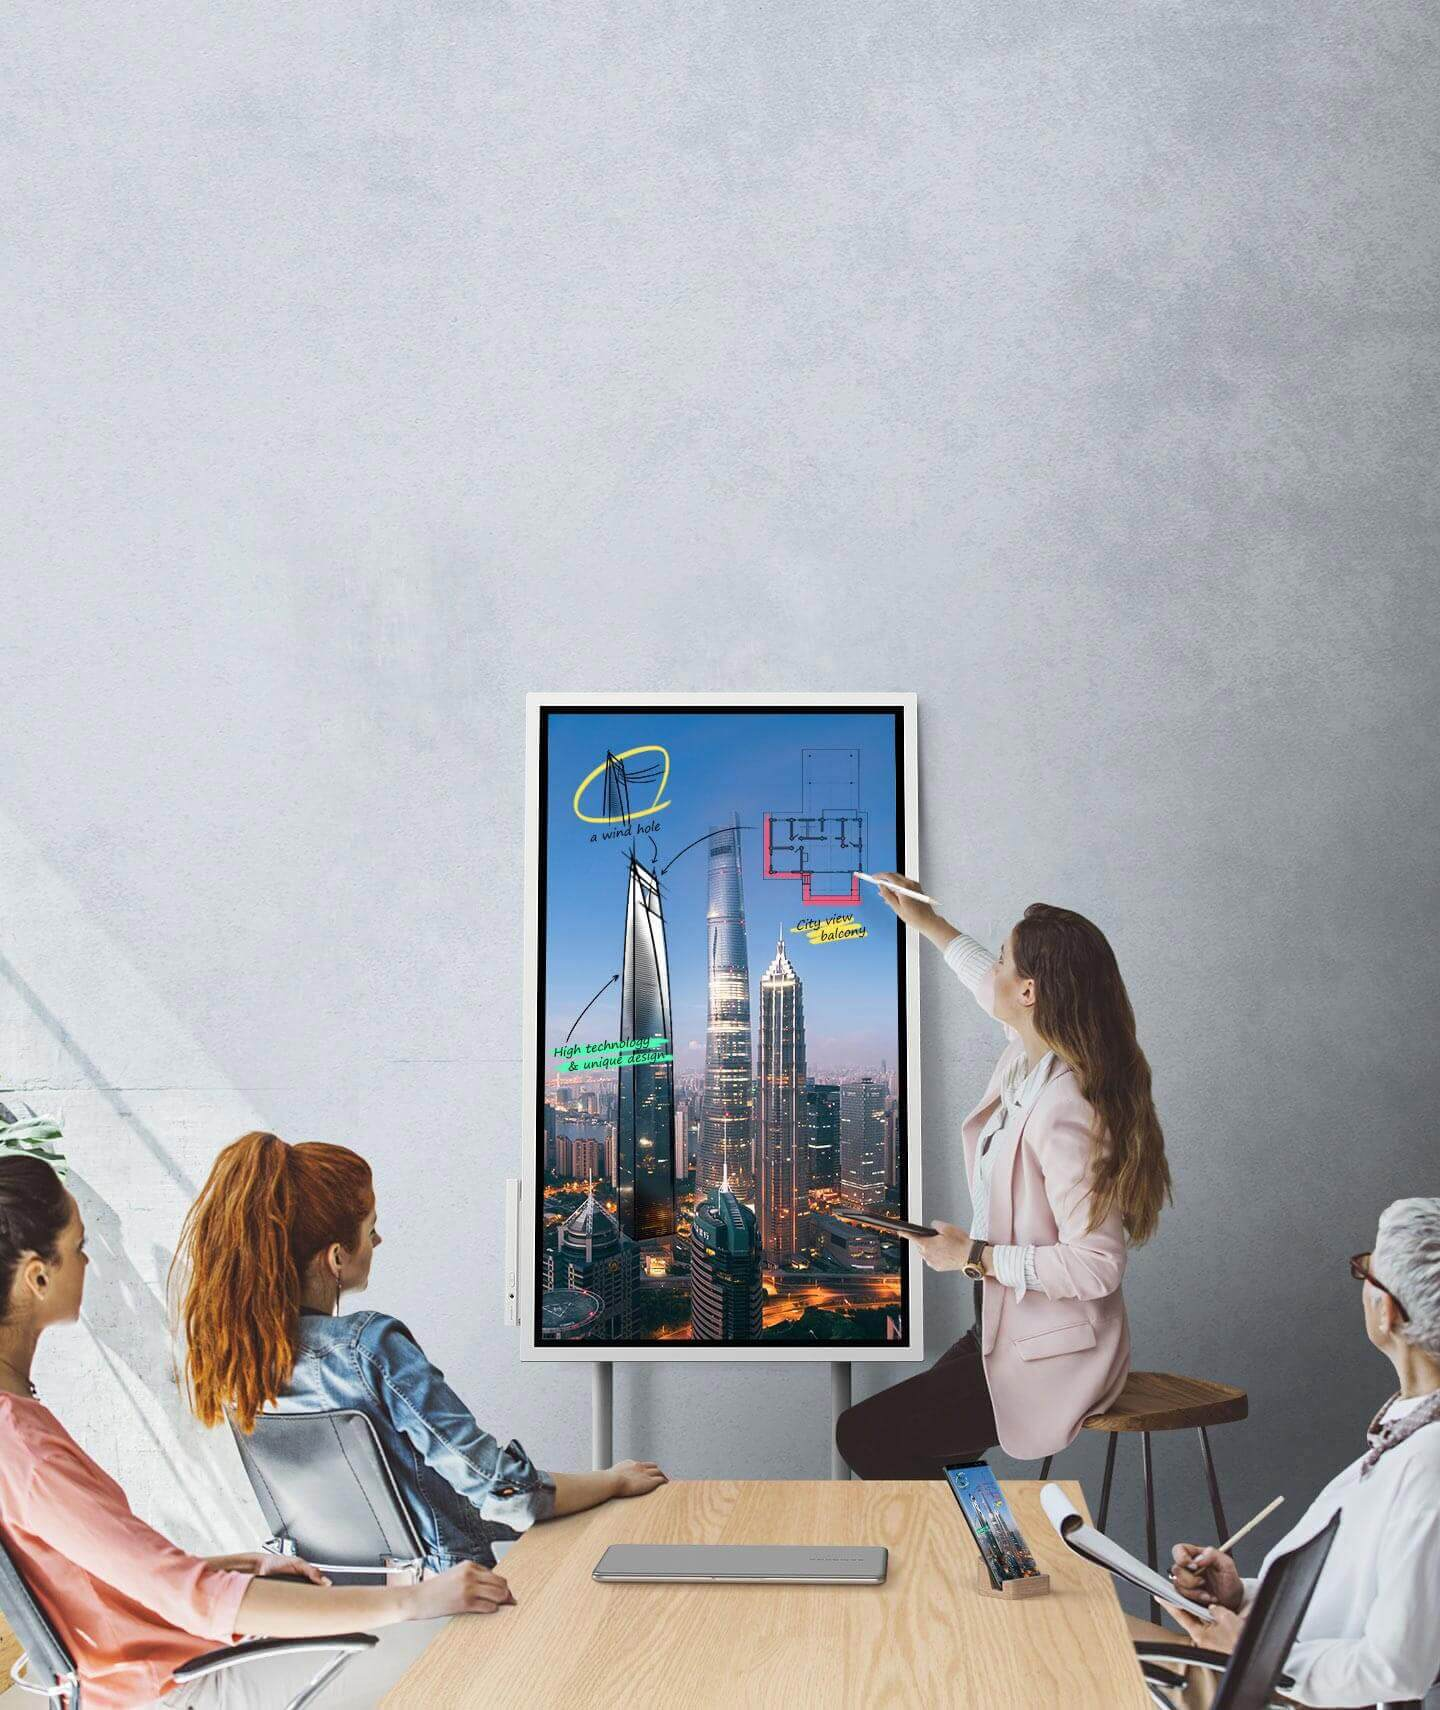 An image showing four people in a meeting where a Samsung Flip device and a smartphone are connected, showing the same images. They are looking at the Samsung Flip's screen positioned in Portait mode and two of them are taking notes.